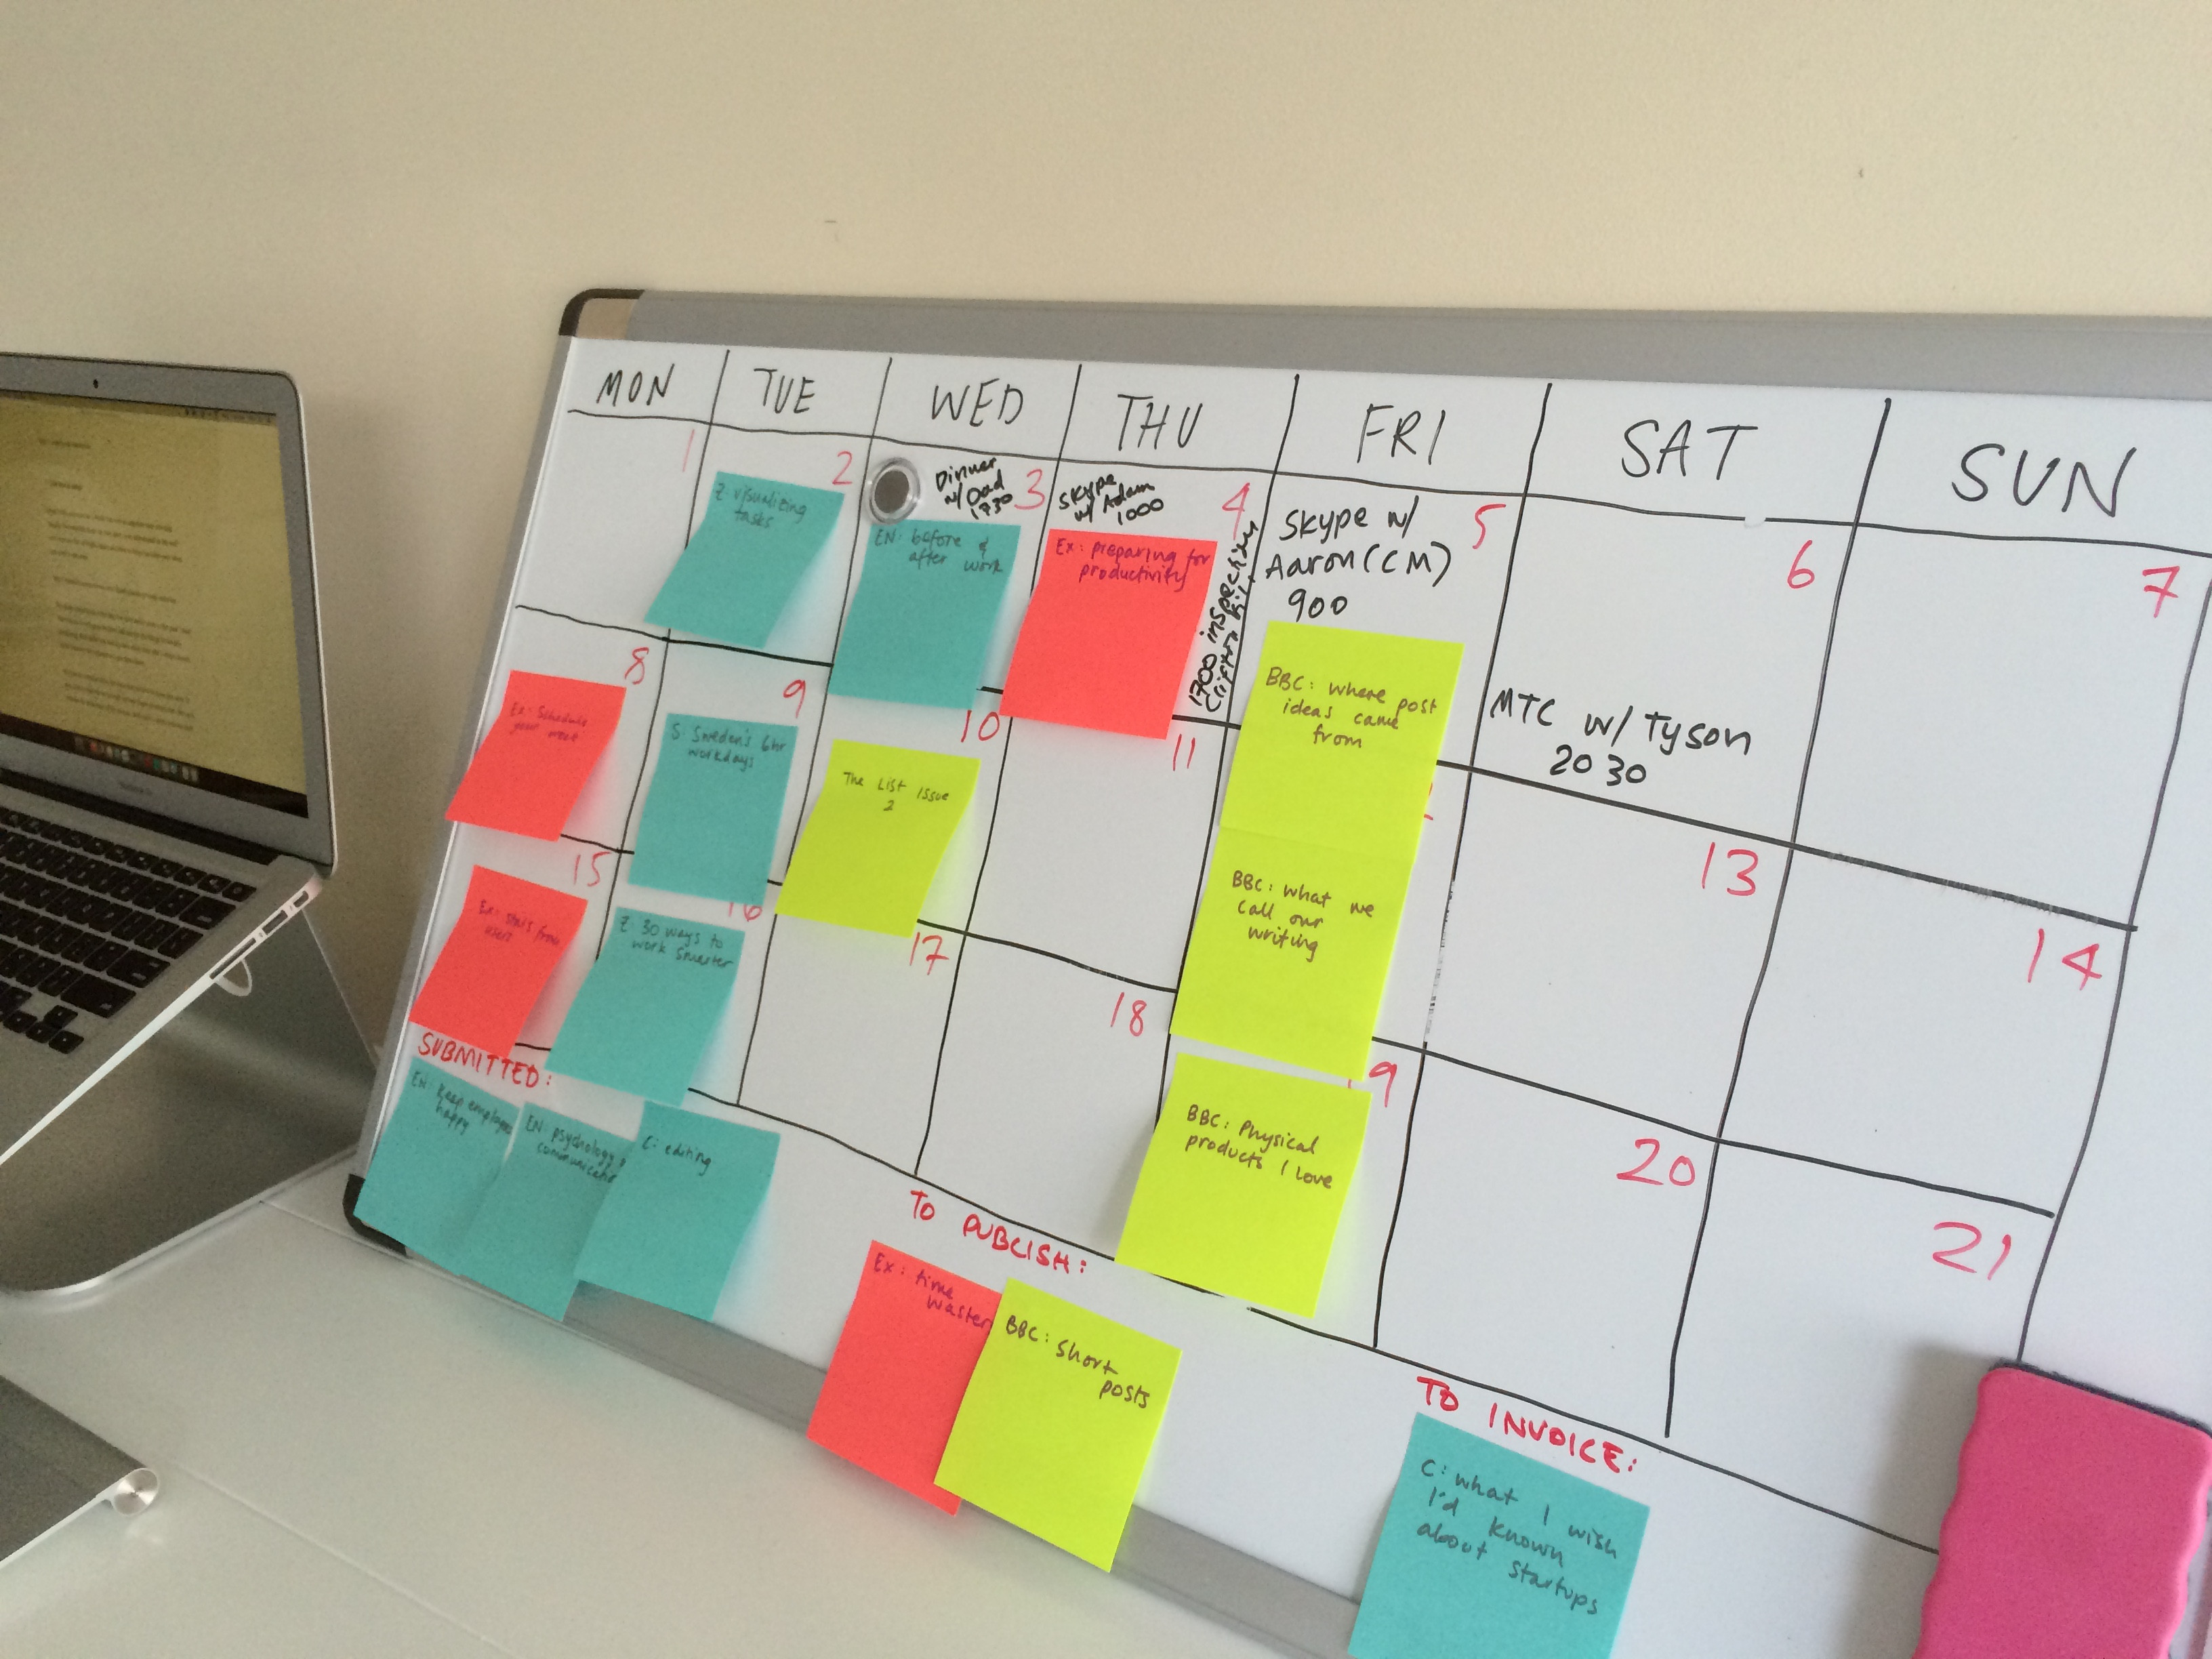 Save Time By Scheduling Your Week Exist